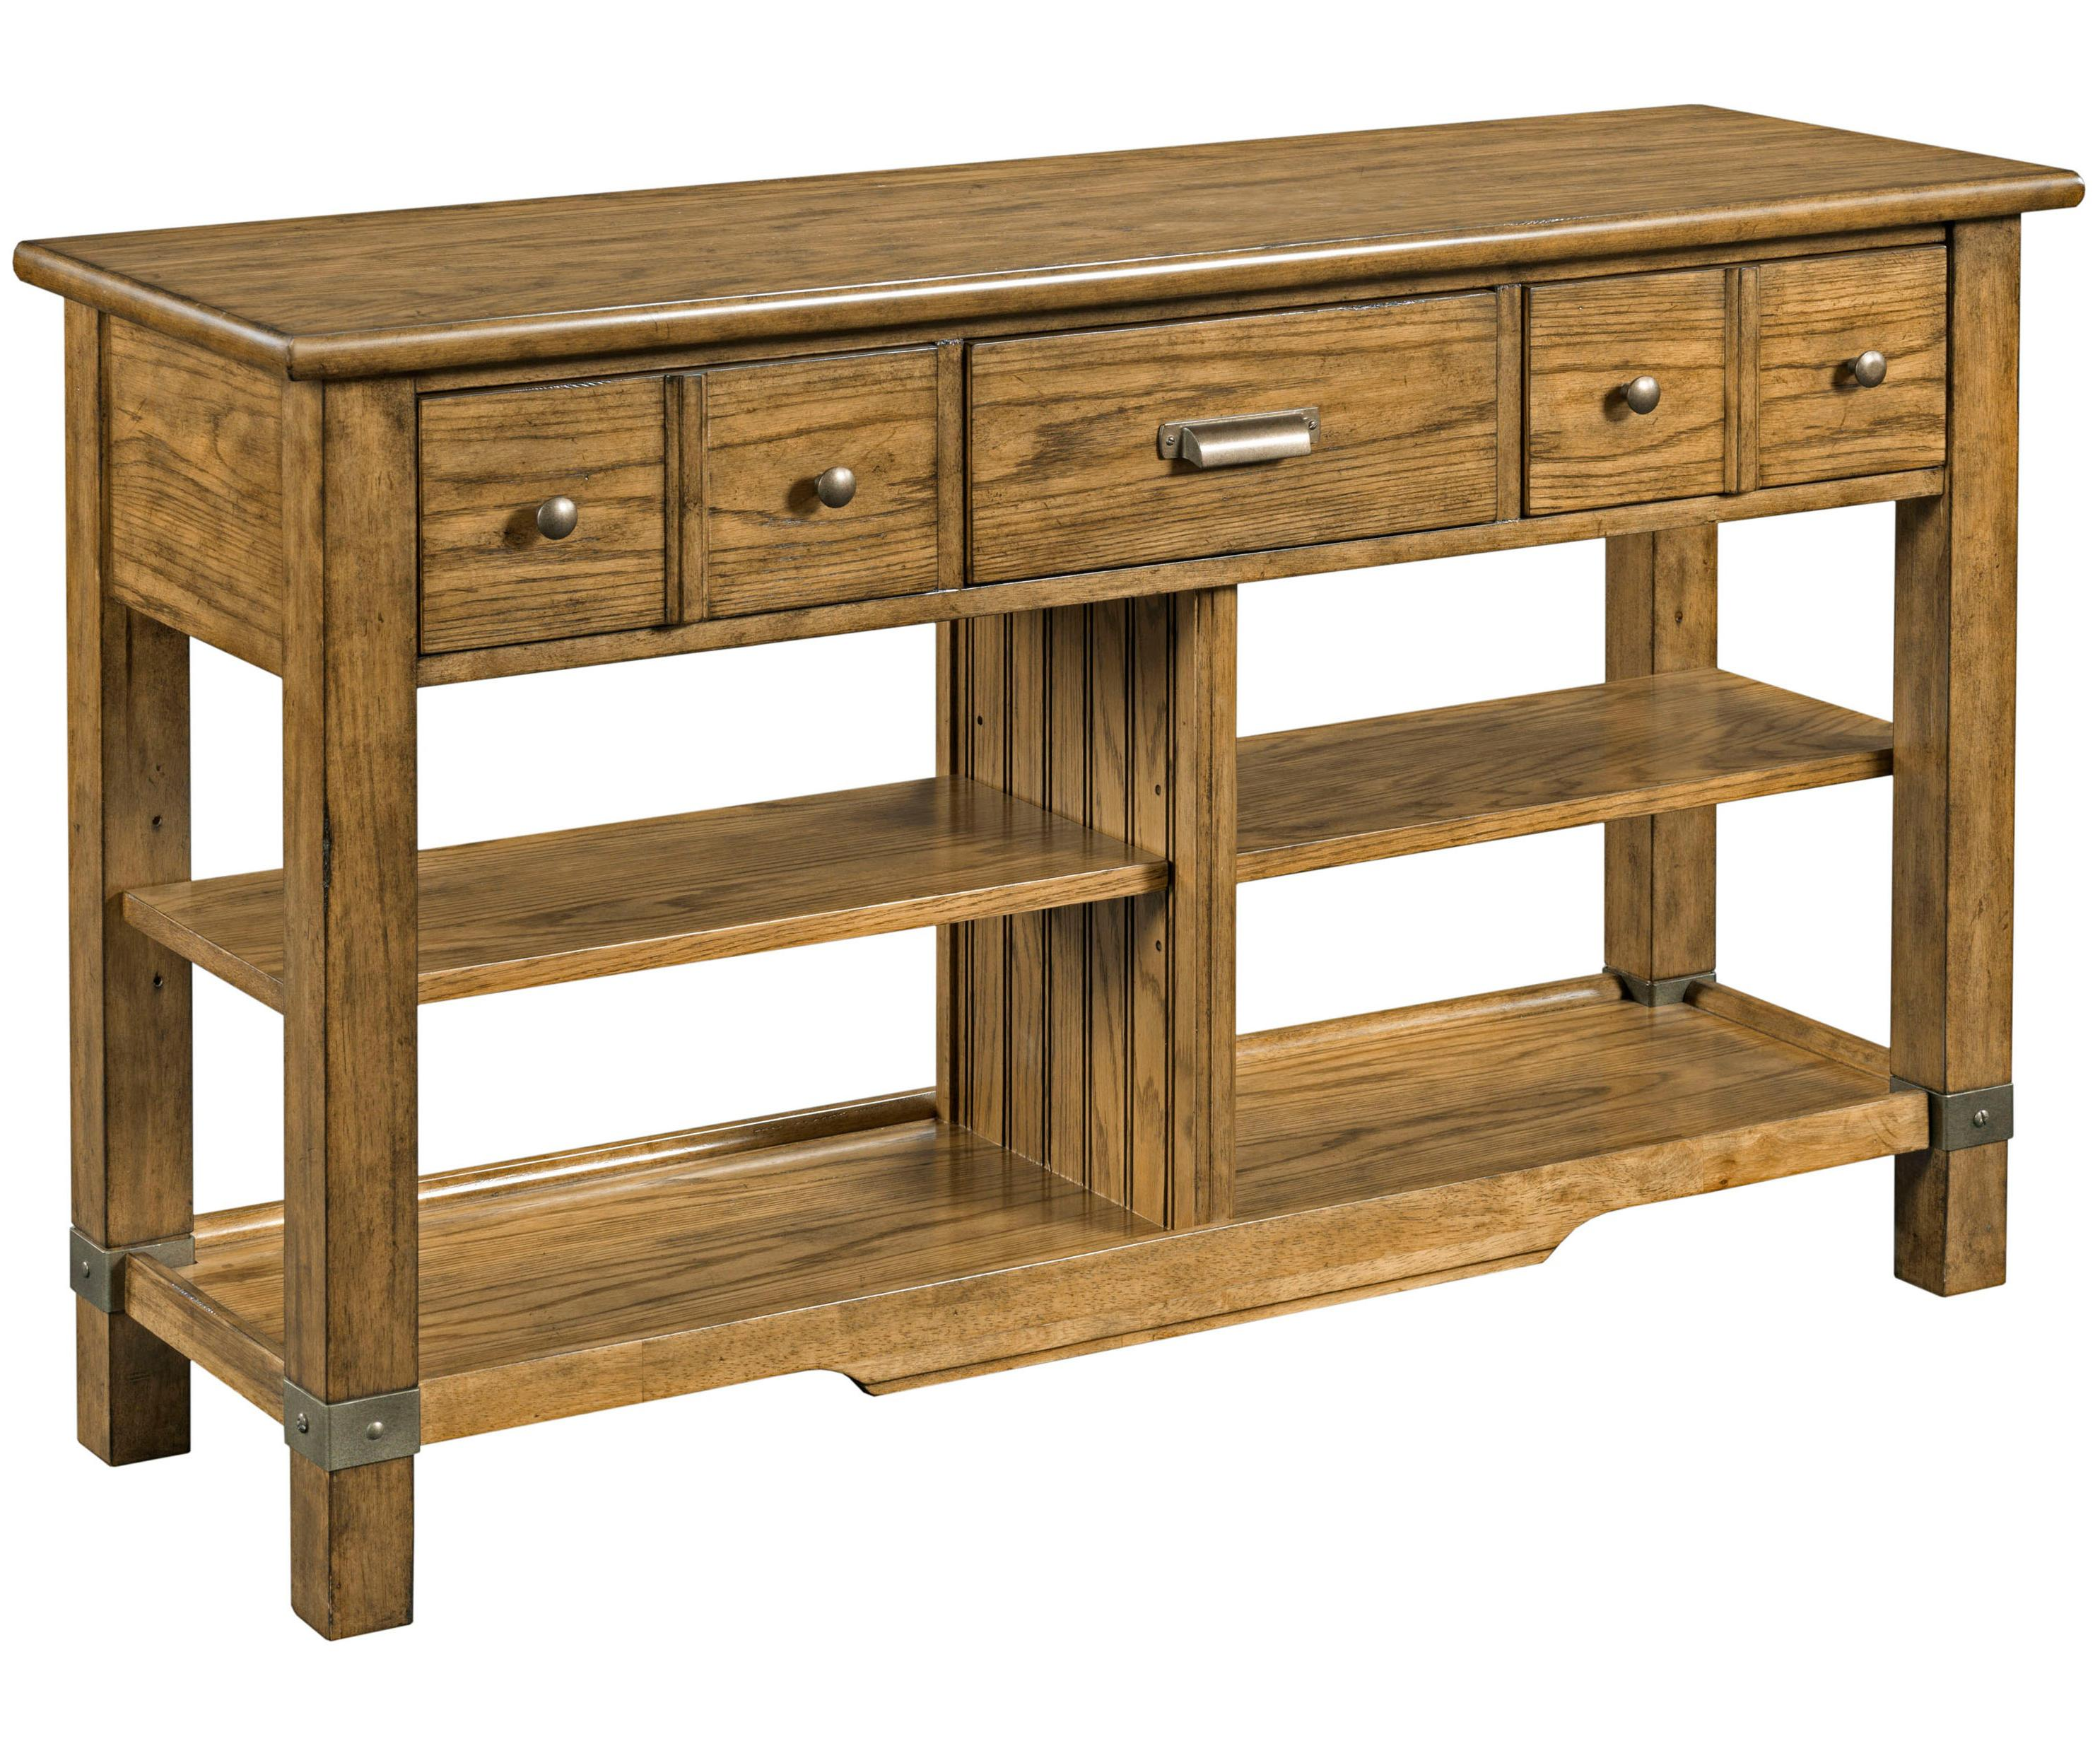 Broyhill Furniture New Vintage Console Table - Item Number: 4808-009